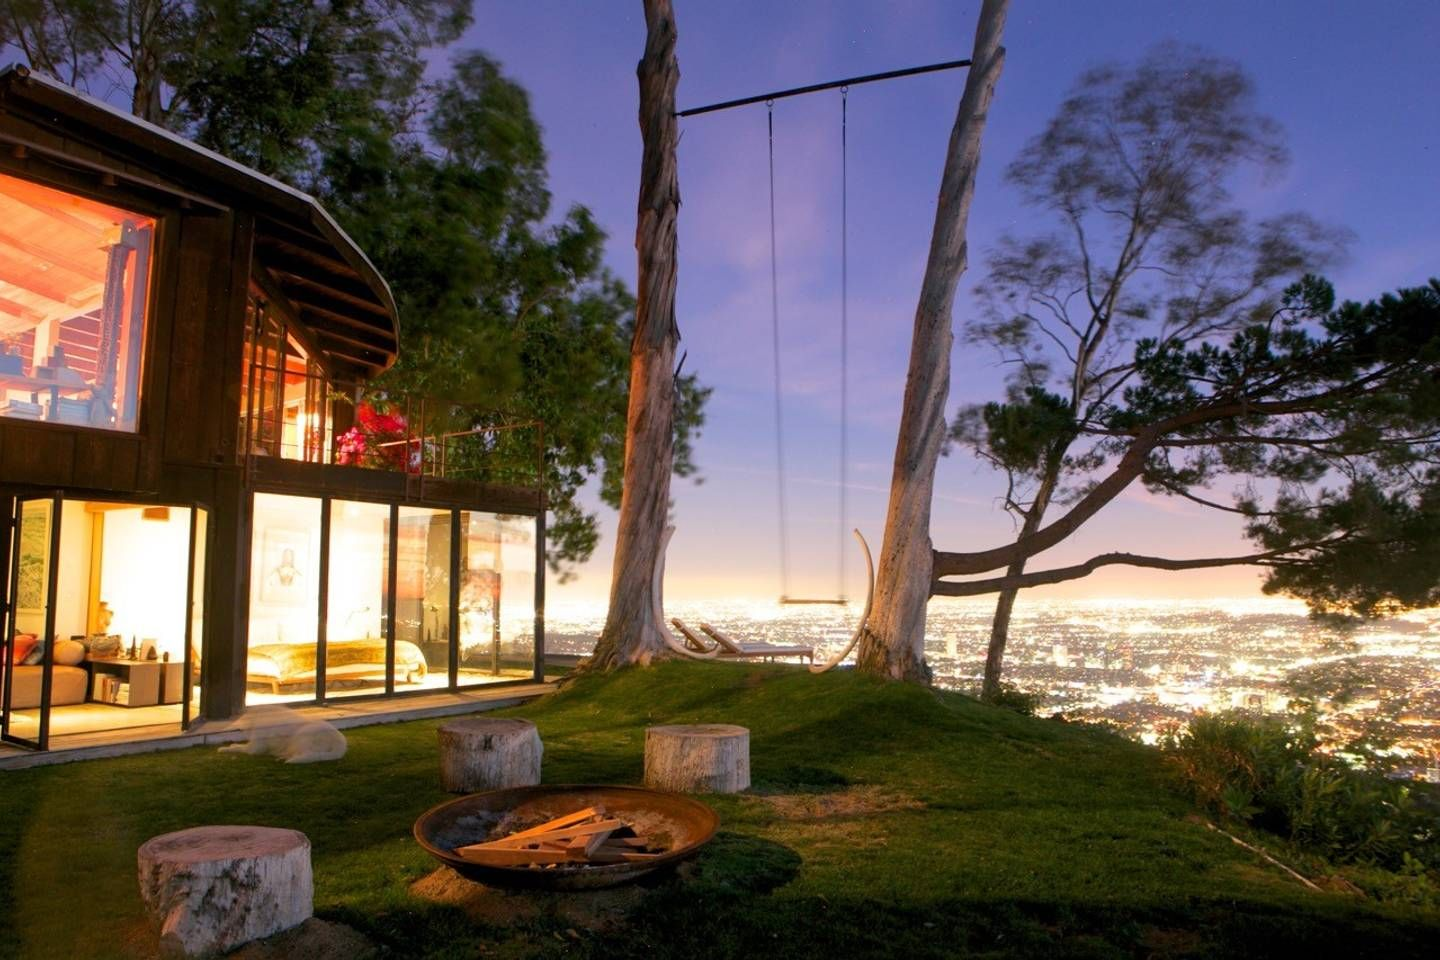 Tree House With 360 Views Of L A Houses For Rent In Los Angeles California United States With Images Airbnb California California Vacation Renting A House